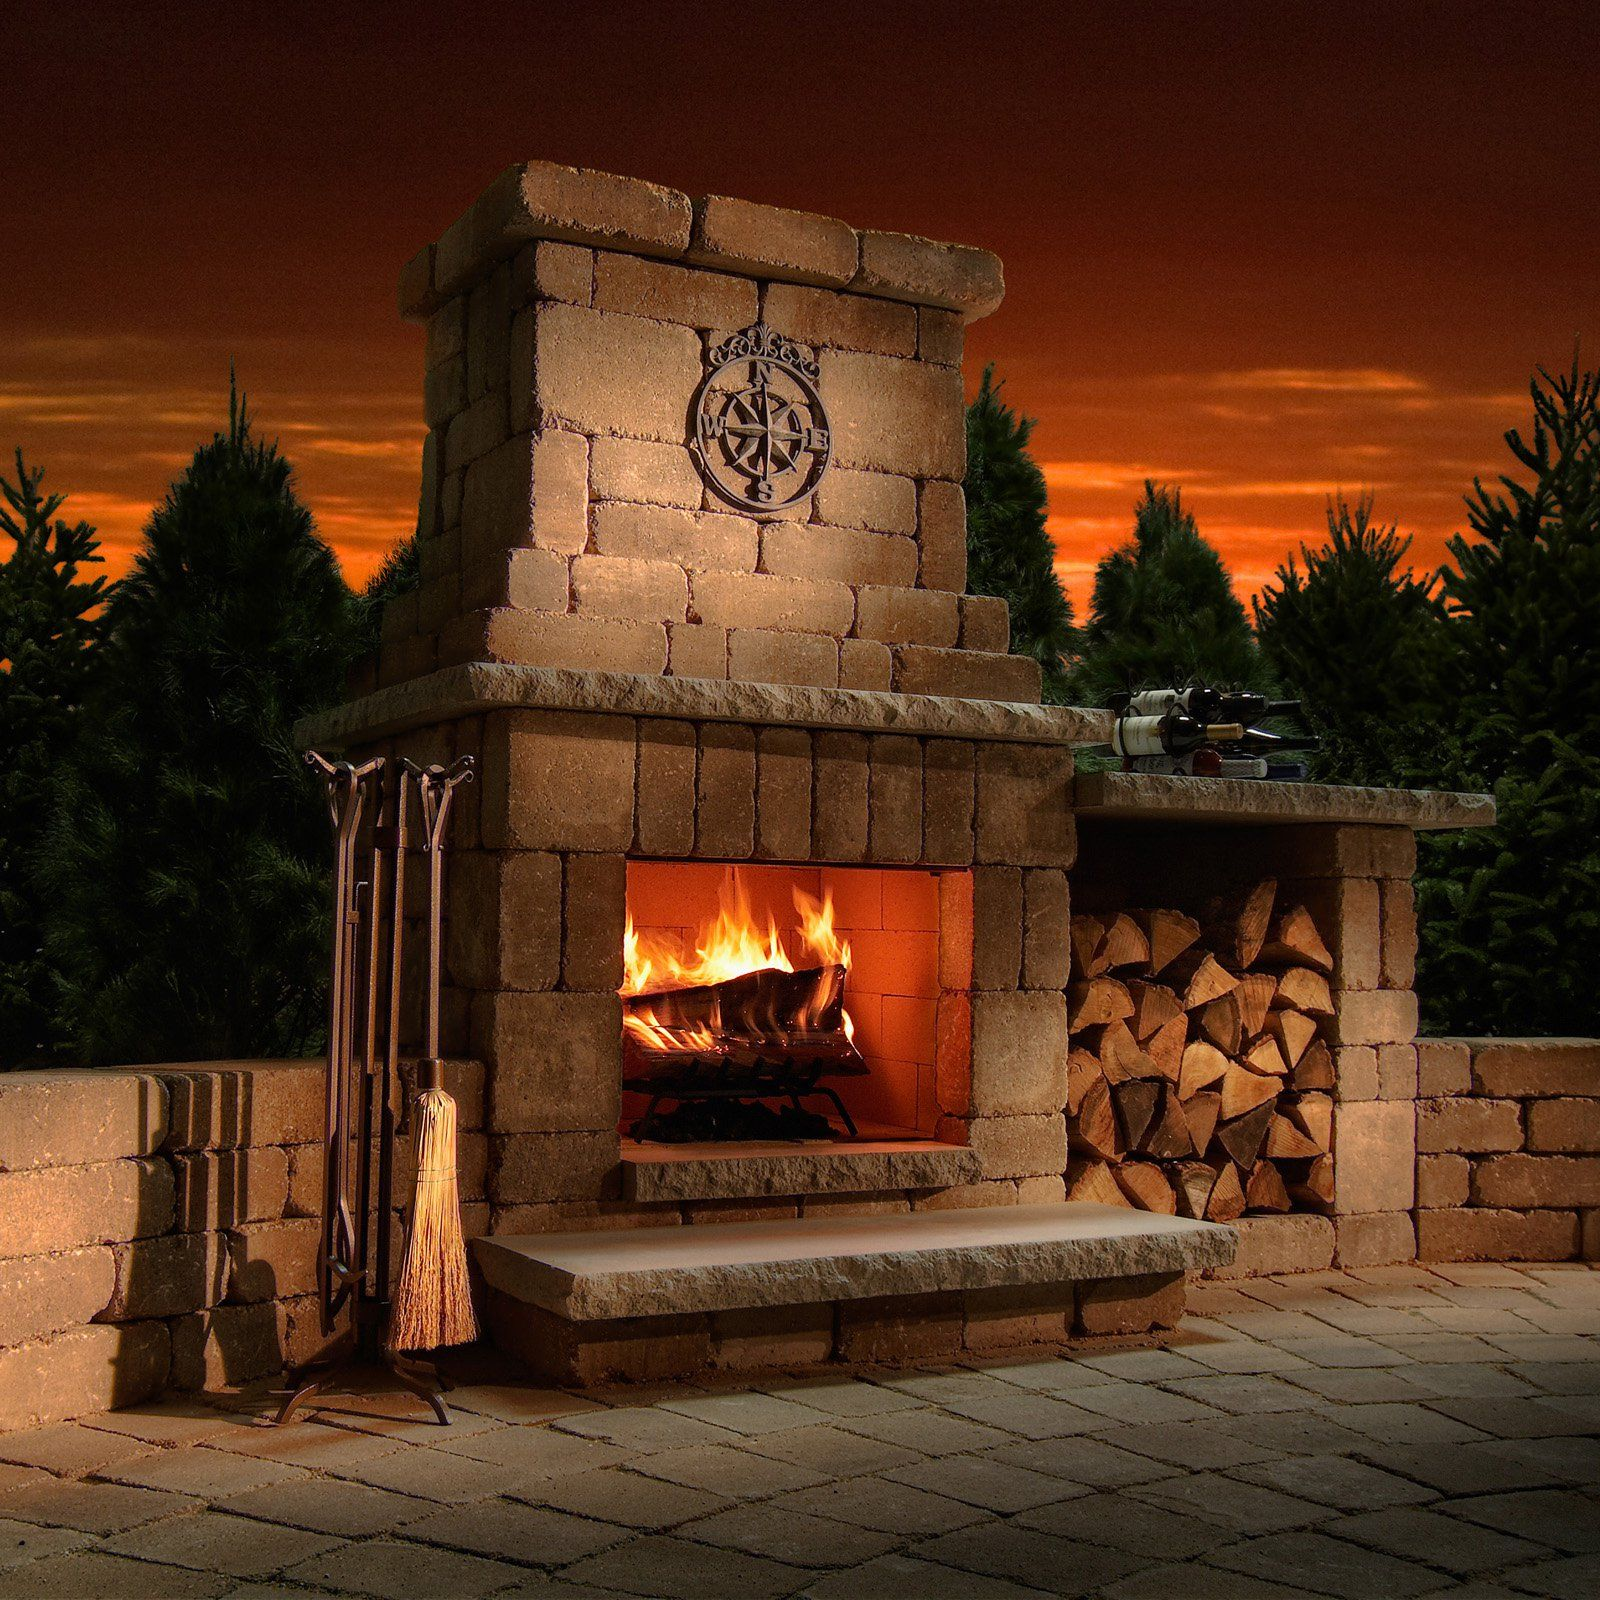 426c15f8b6e57c2b703cb92a05a813f9 Top Result 50 Awesome Prefab Outdoor Fireplace Photography 2018 Hiw6